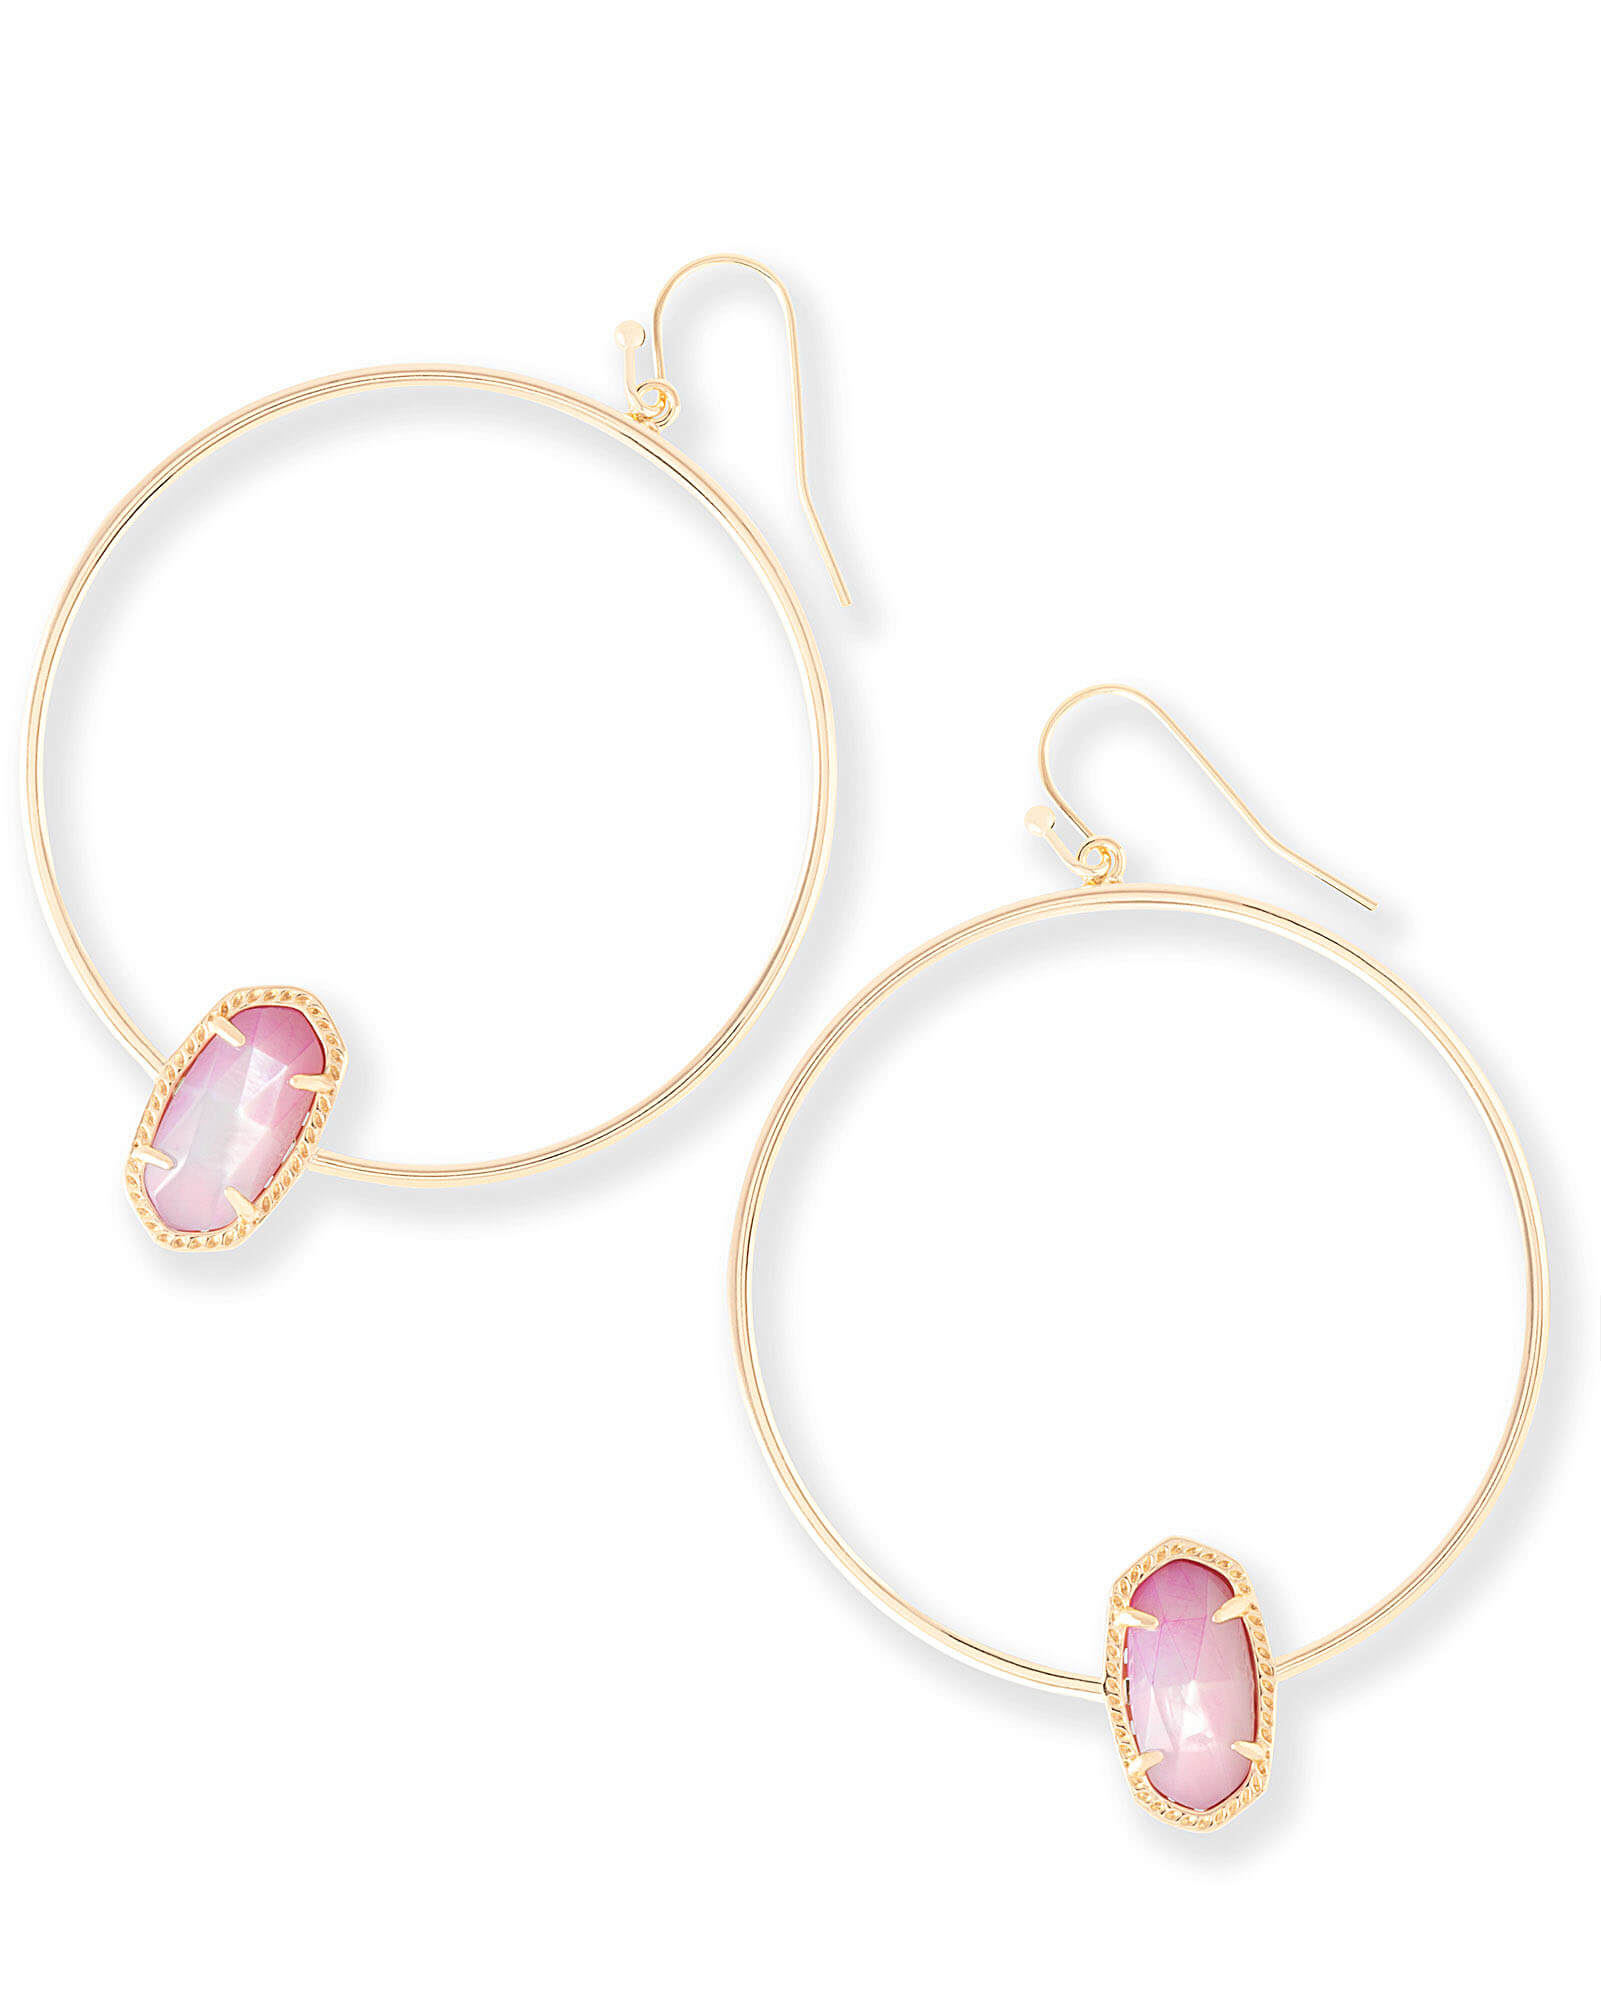 Elora Hoop Earrings in Blush Pearl